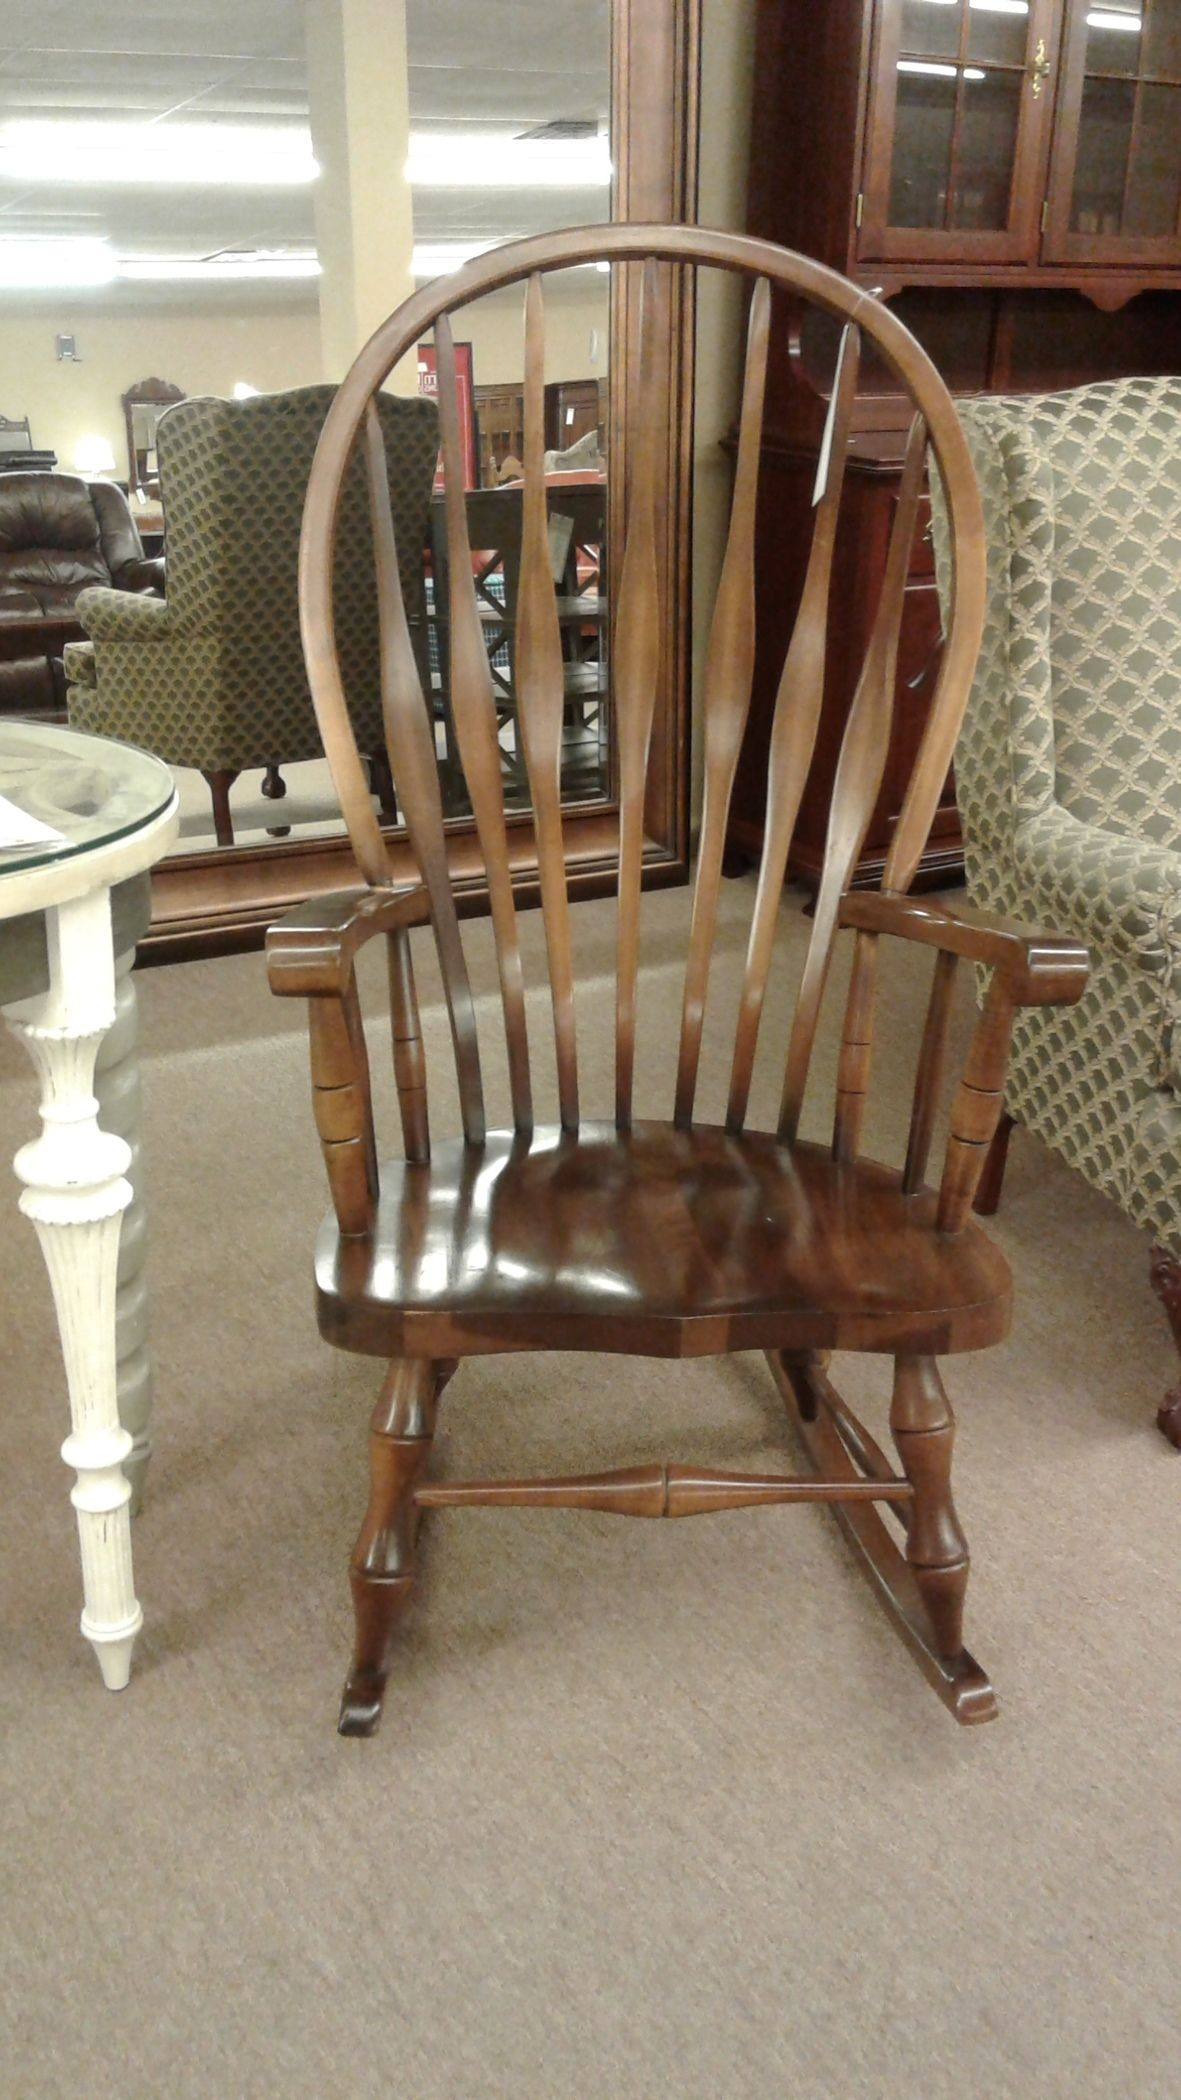 VIRGINIA HOUSE ROCKER  Delmarva Furniture Consignment